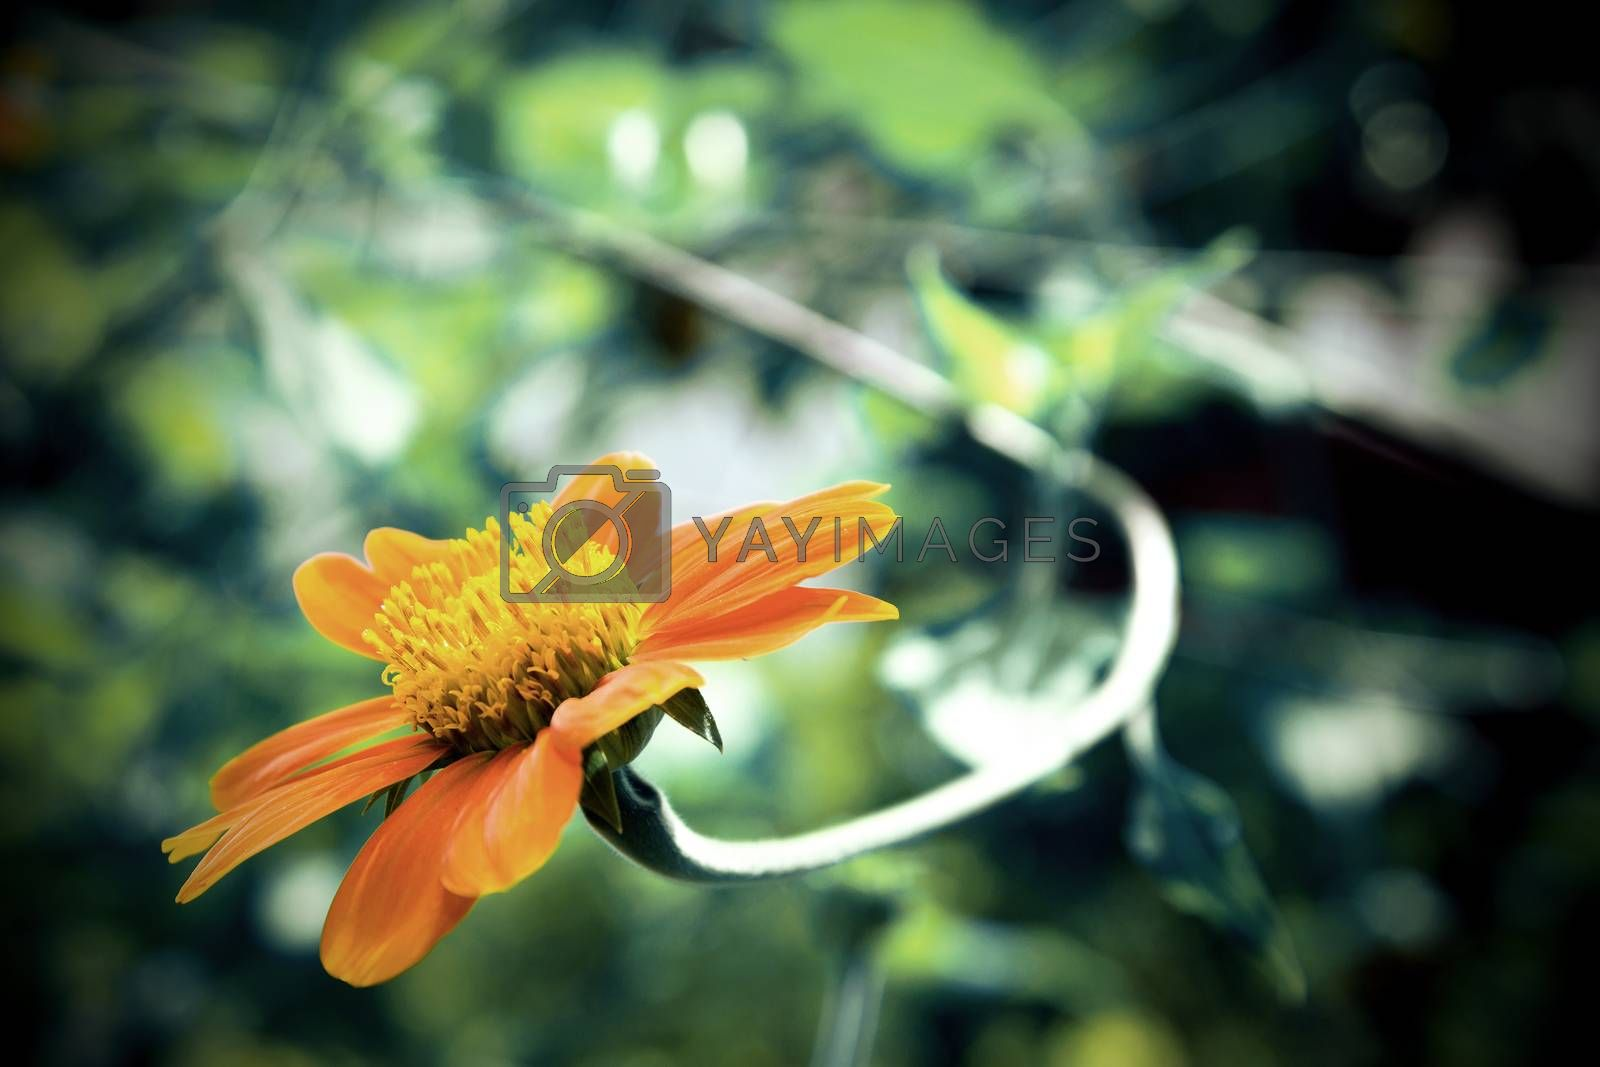 A close up of a Mexican Sunflower (vintage tone style) by jakgree